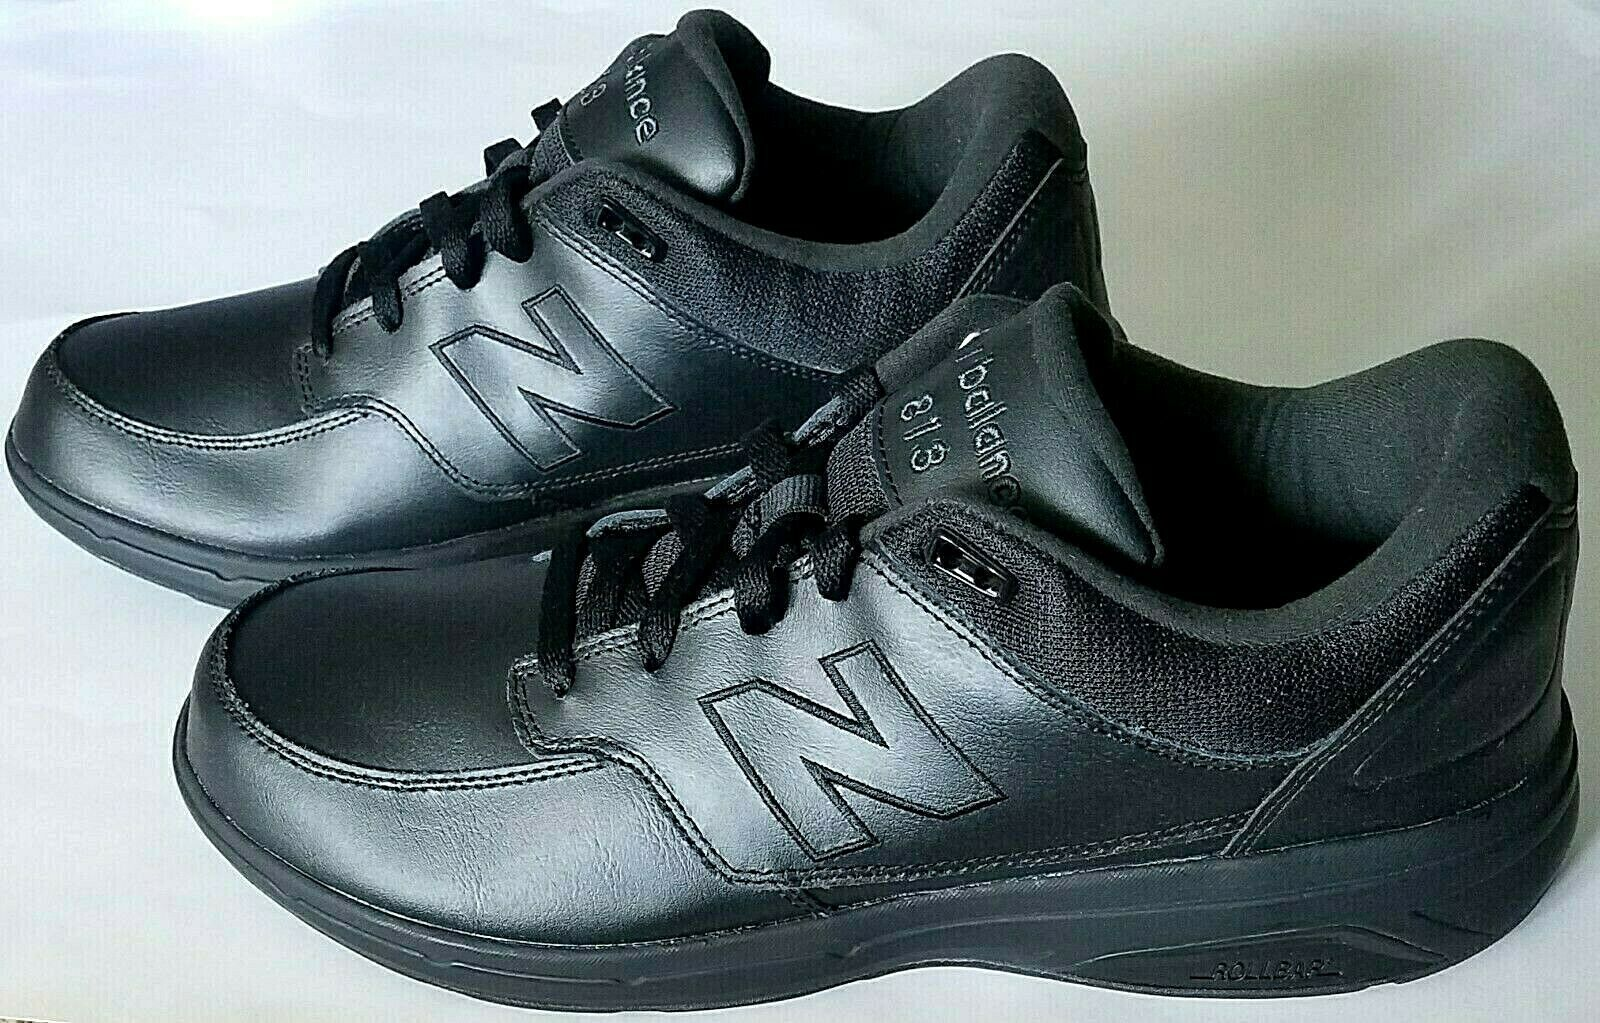 NEW BALANCE Men's MW813BK Black Leather Lace-Up Walking shoes Size US 12